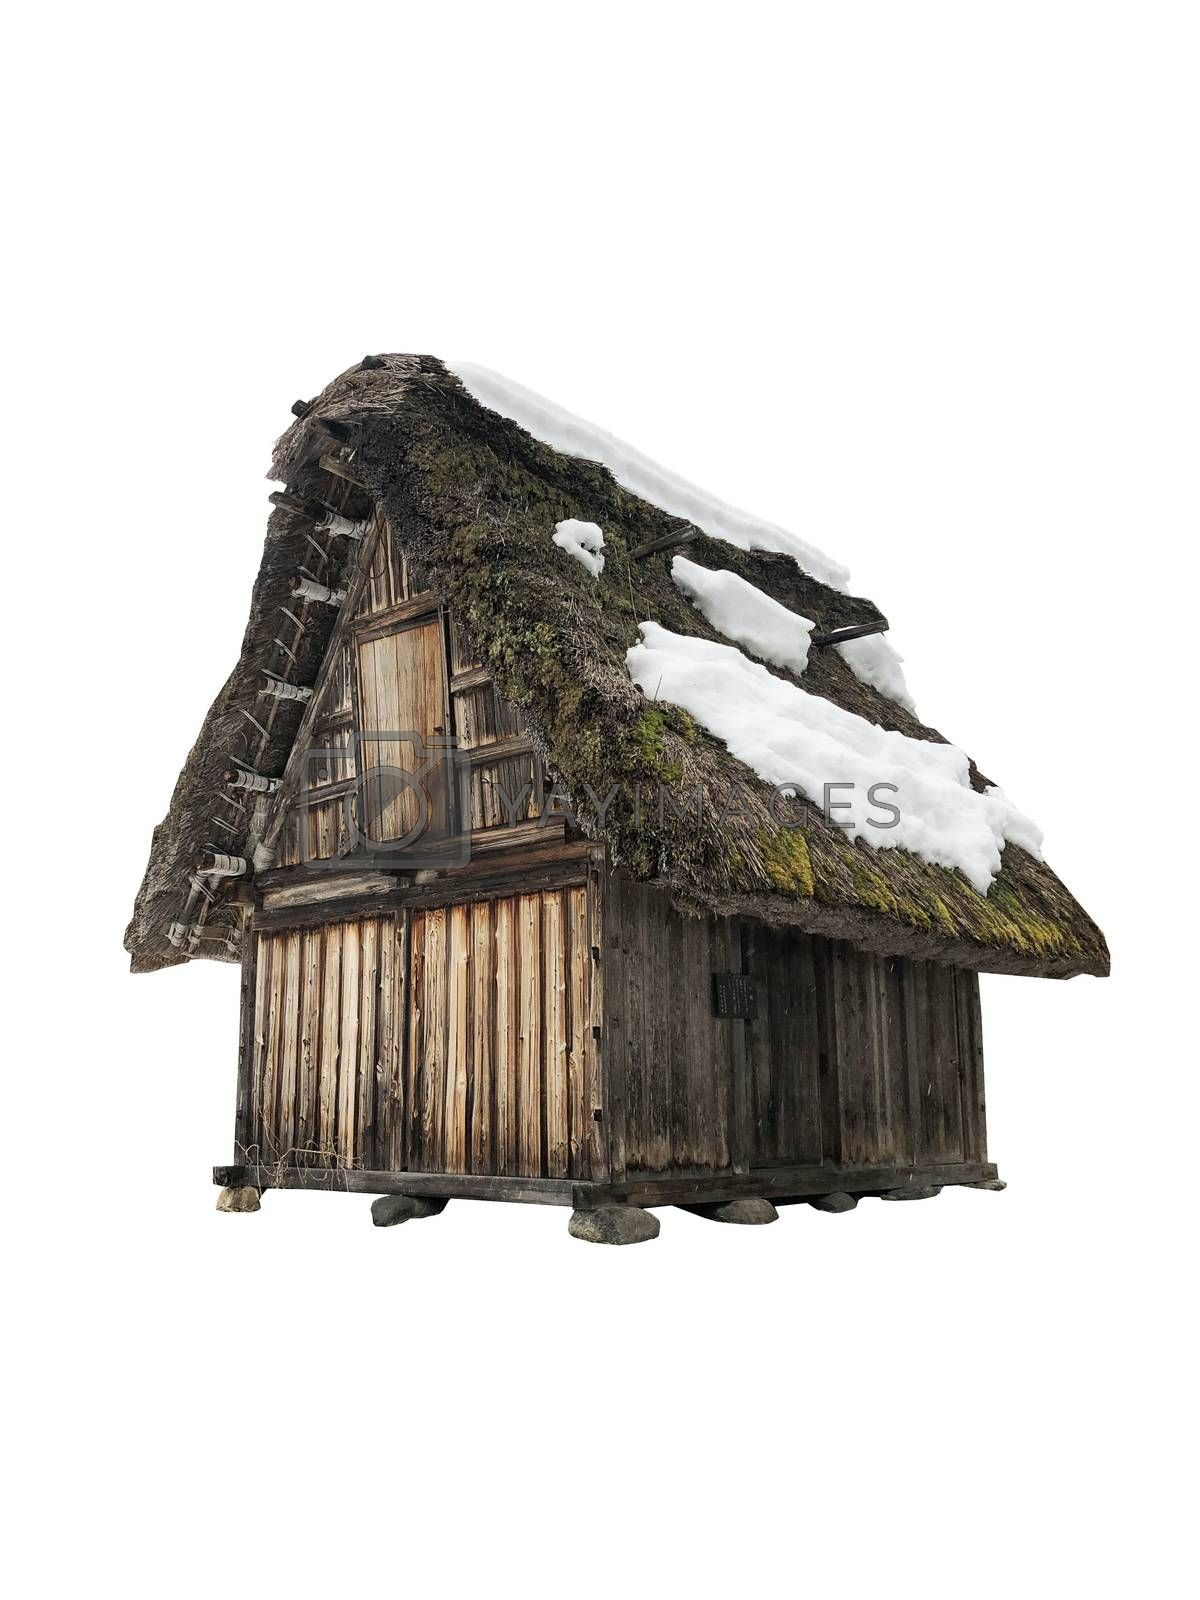 Traditional house in Shirakawago, Gifu Prefecture, Japan on white background